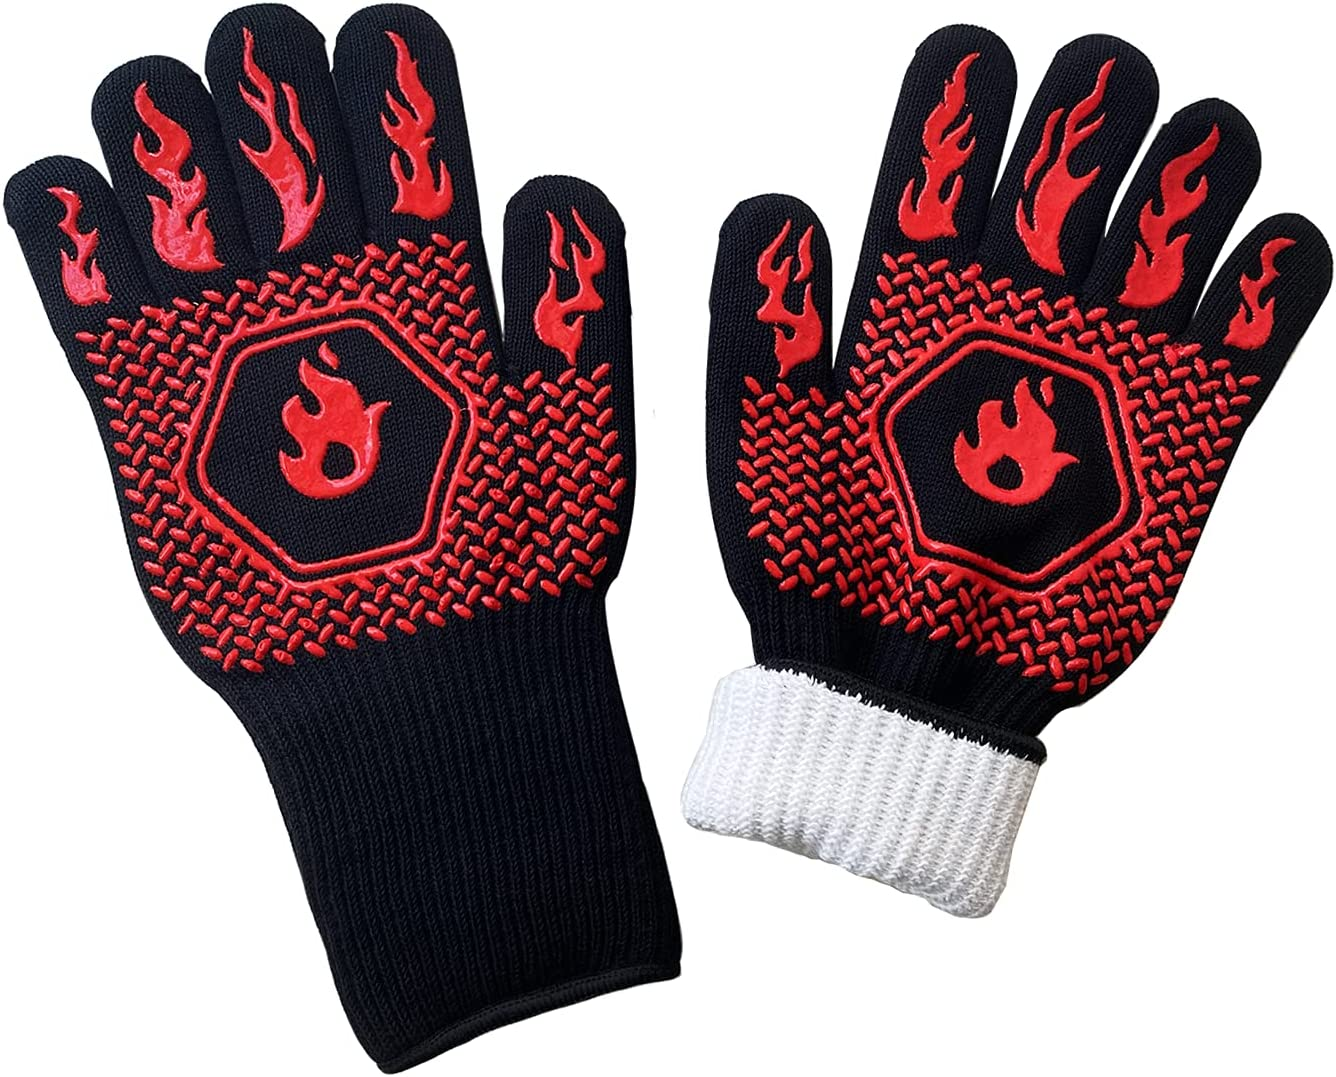 BBQ Gloves,Oven Gloves1472℉ Heat Resistant Grilling Gloves Food Grade Kitchen Grill Gloves, 14 Inch Silicone Non-Slip Cooking Gloves for Barbecue, Cooking, Baking, Welding, Cutting